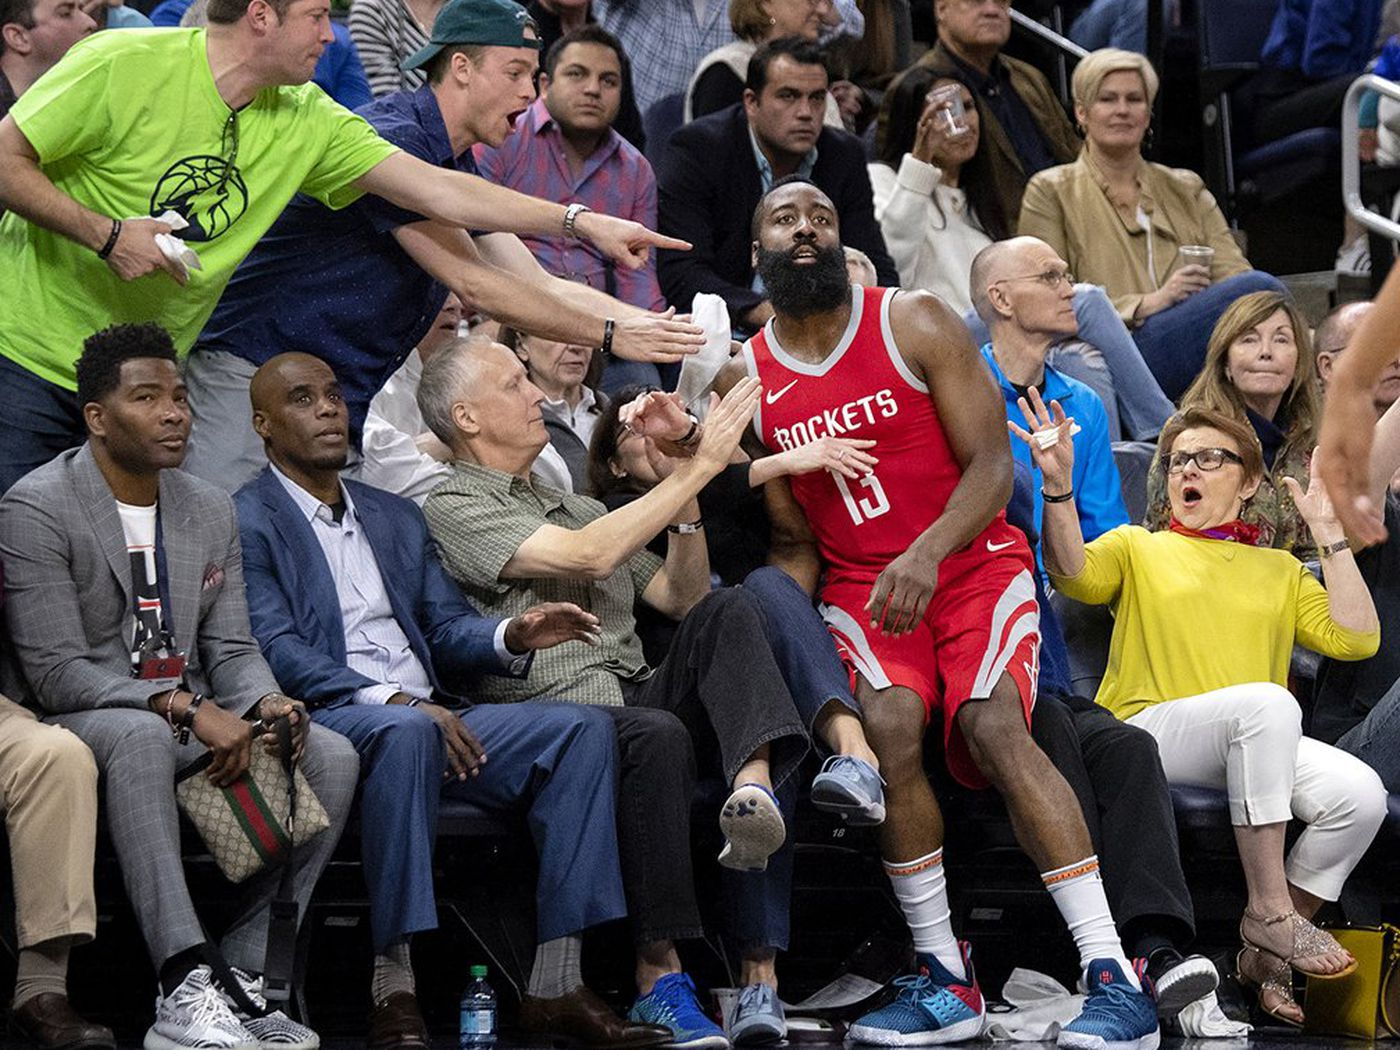 d78e6c600a69 Twitter turned this James Harden photo into renaissance art - SBNation.com